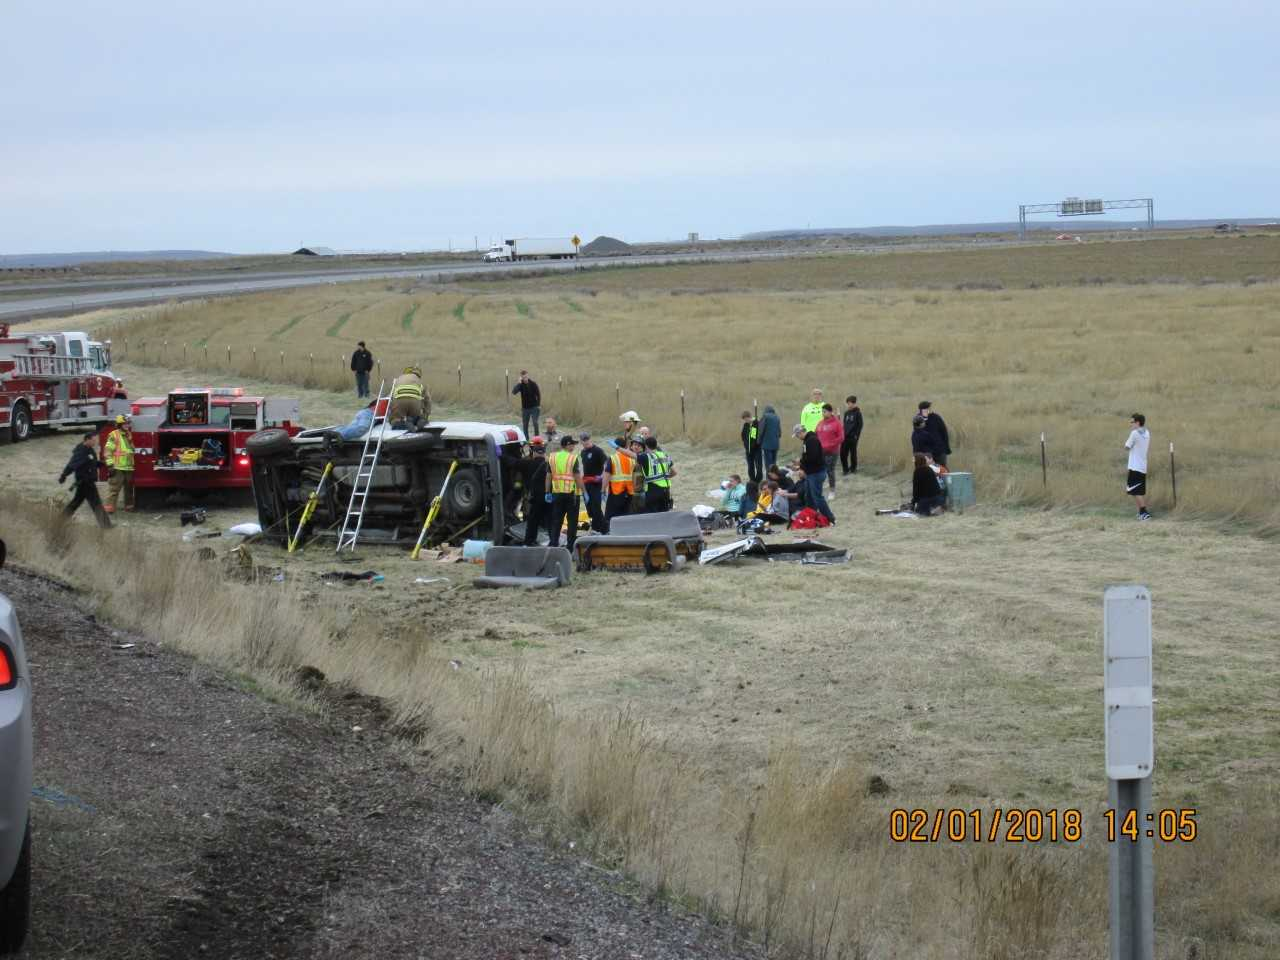 Youth group recovers after van crashes near Hermiston